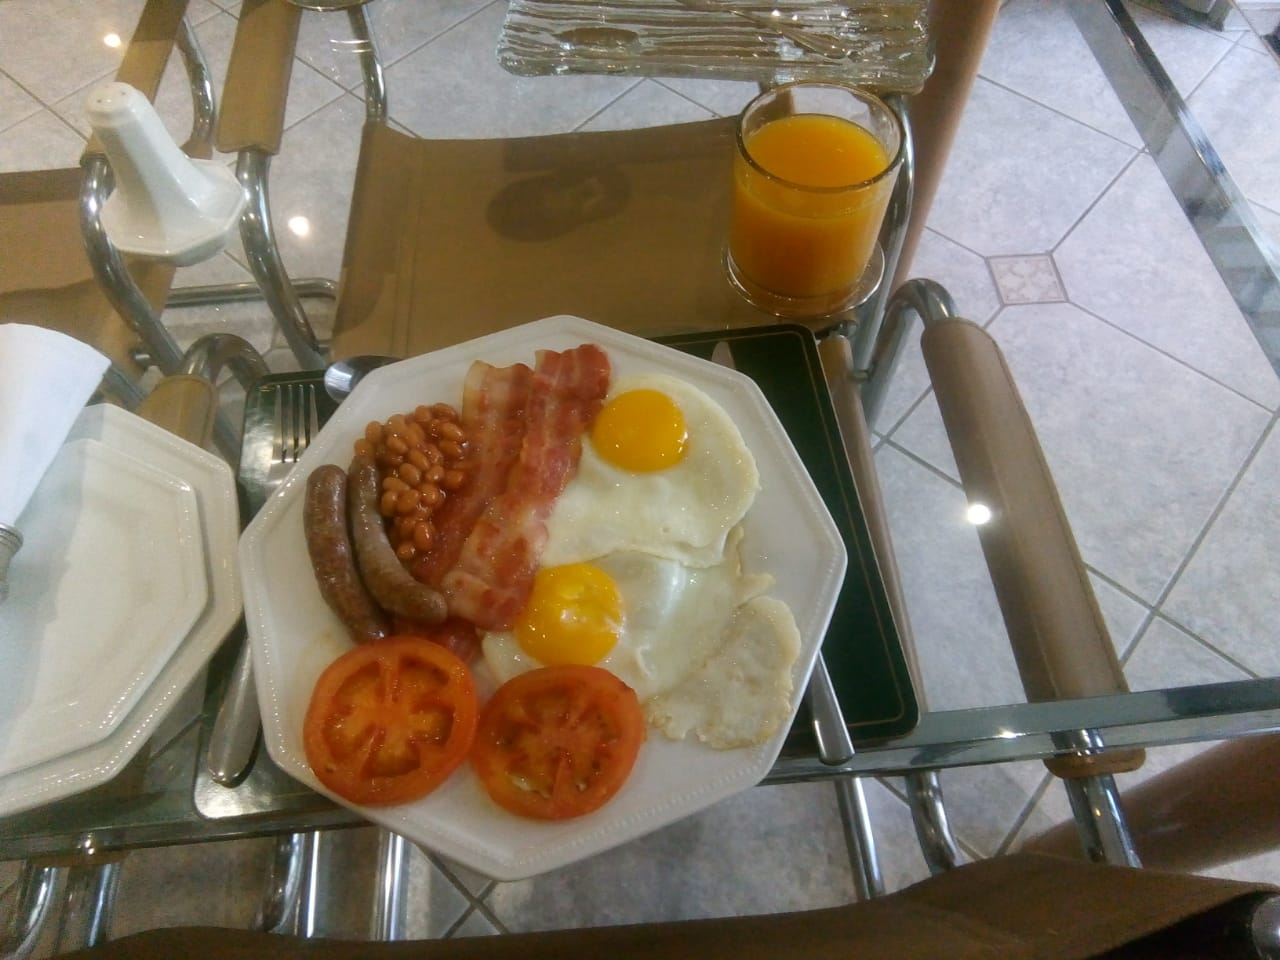 Full English Breakfast @R50 extra